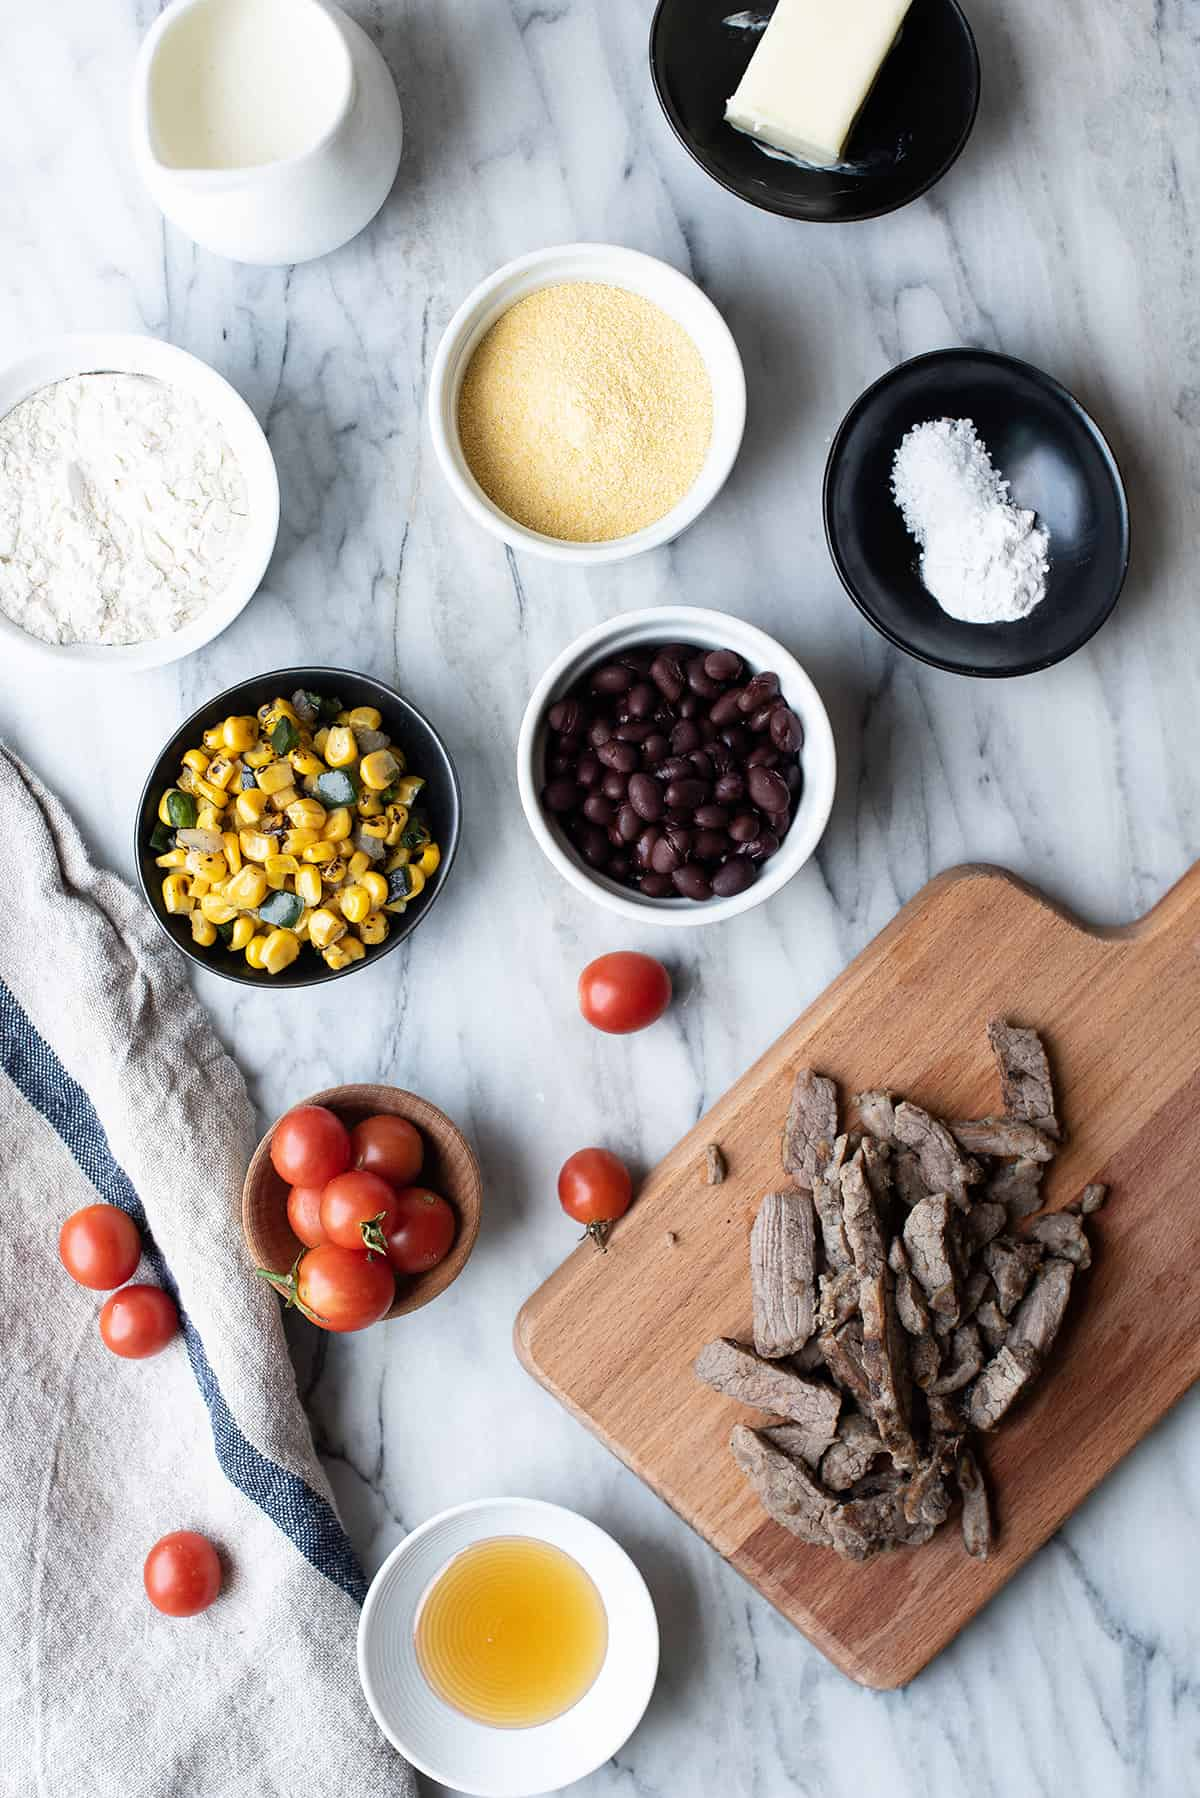 skilled fiesta cornbread ingredients on a tabletop